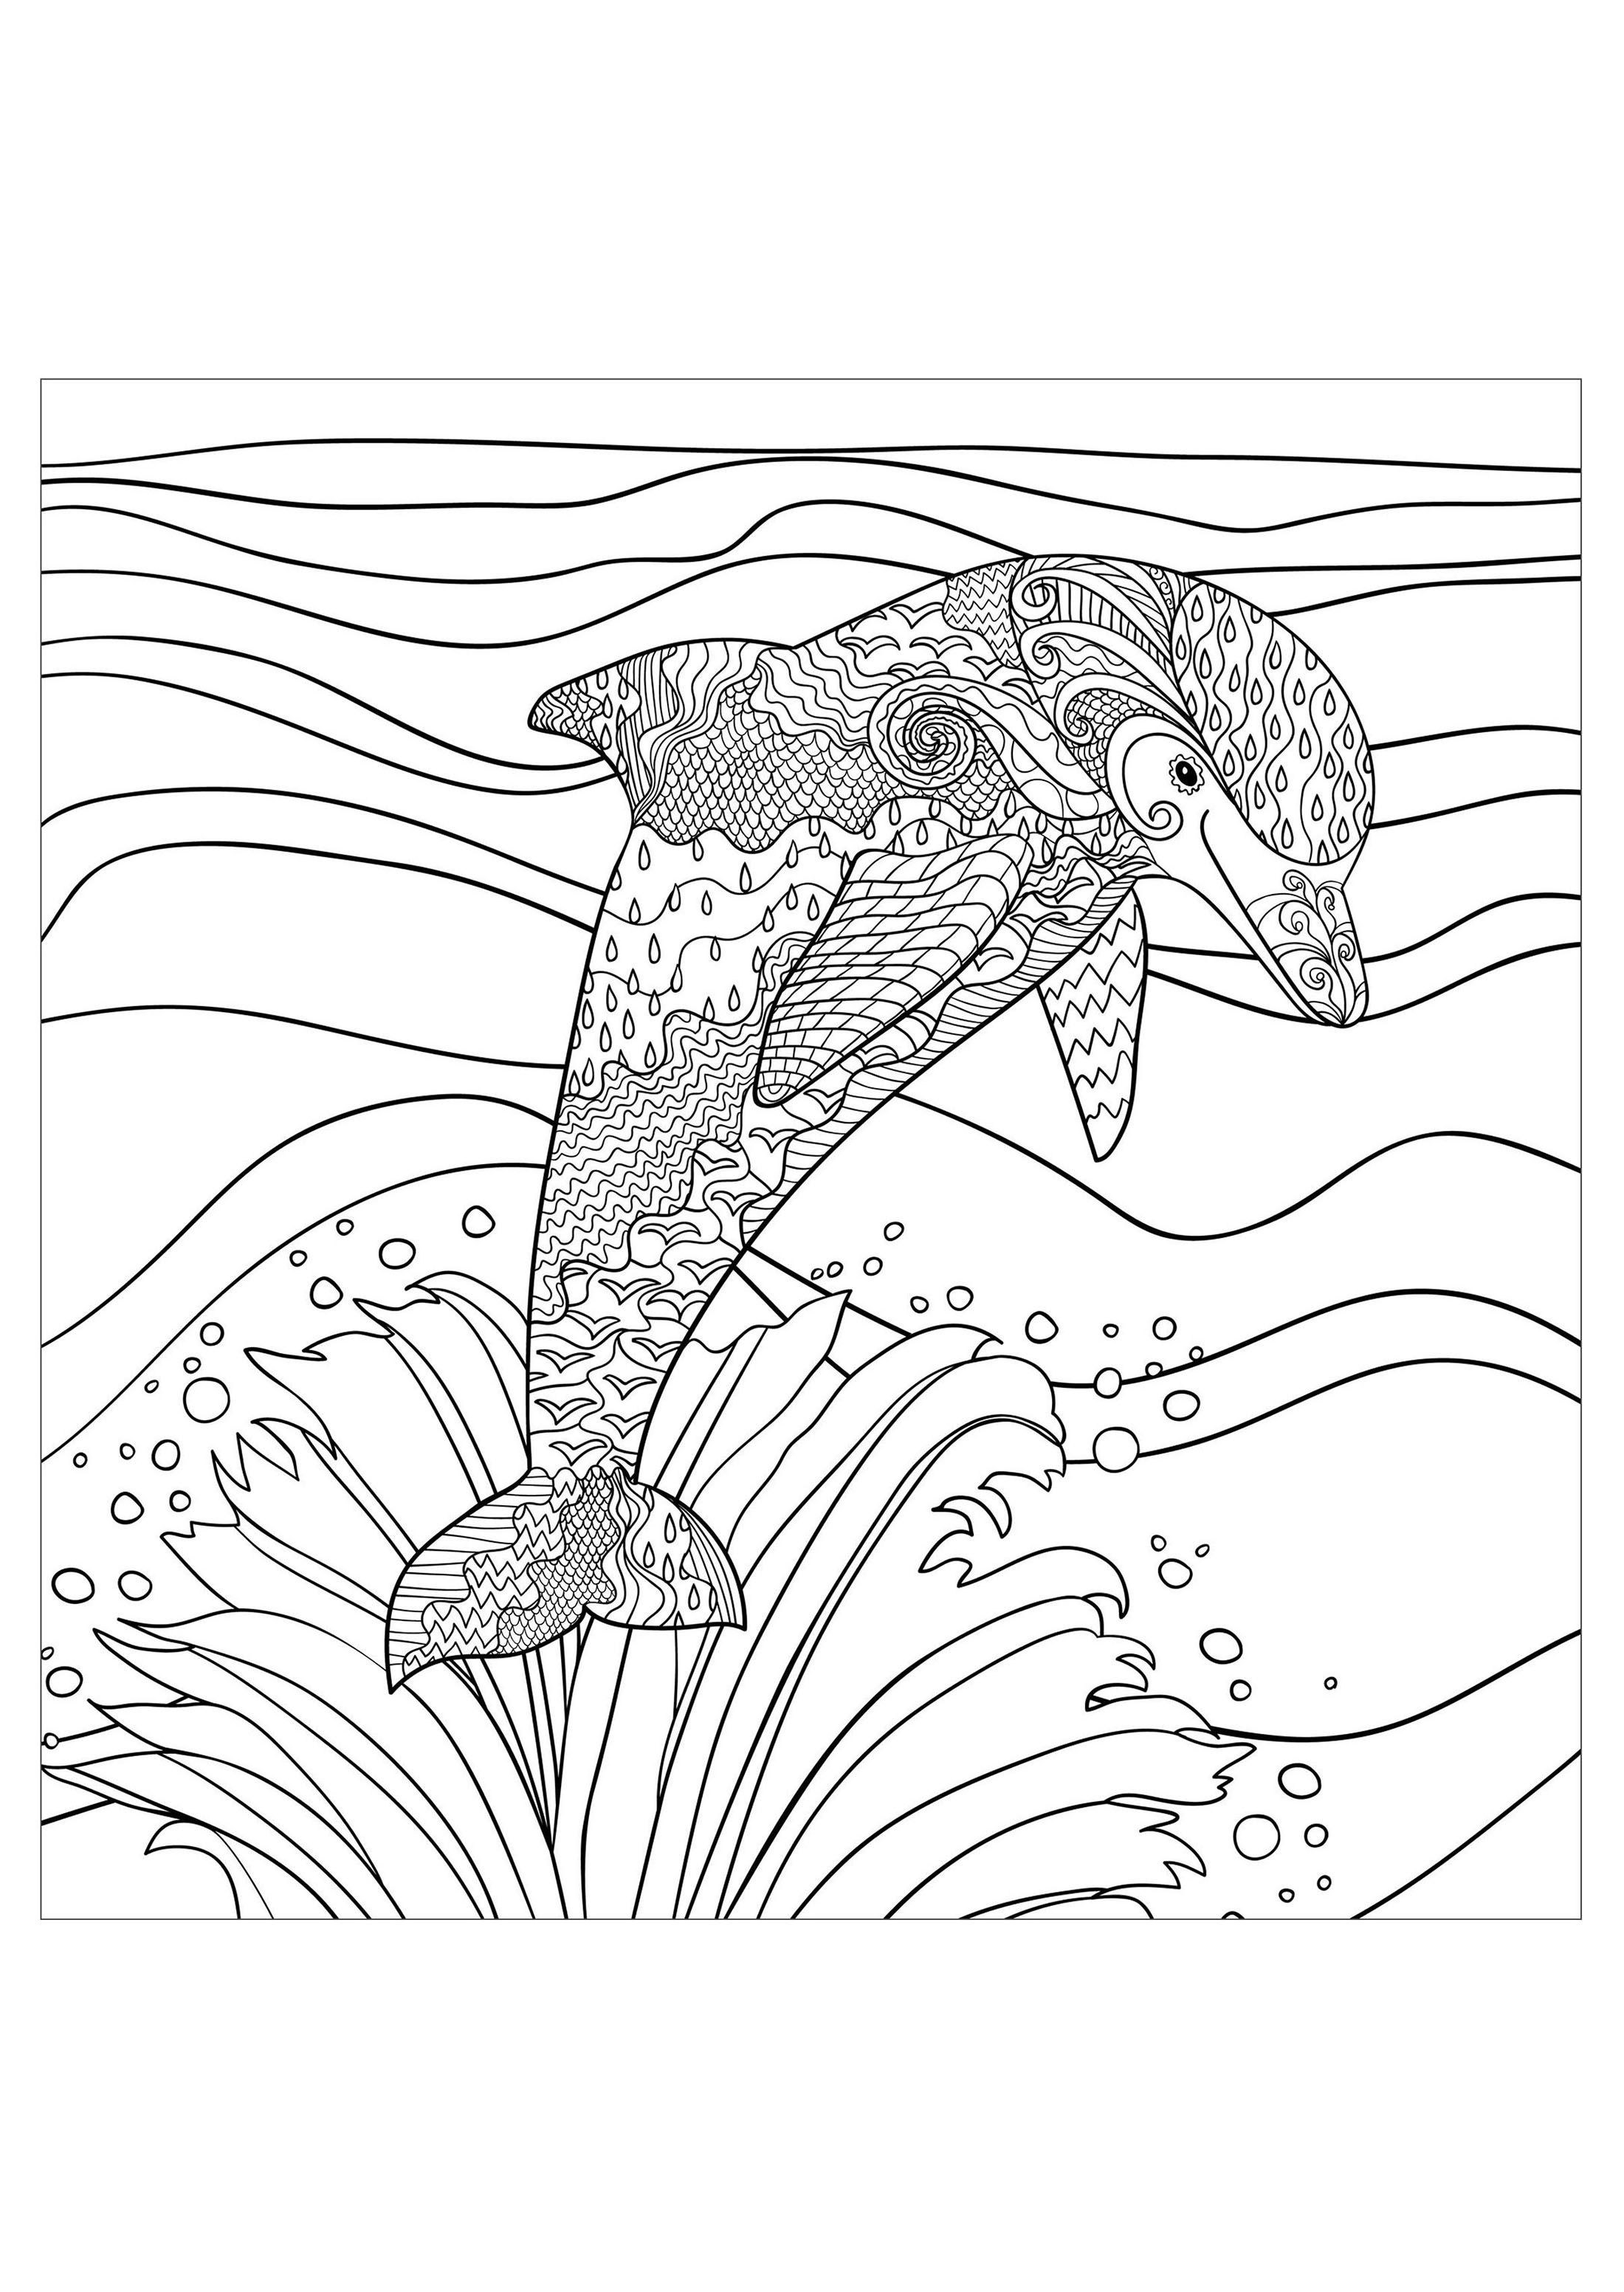 Dolphin waves sea - Dolphins Adult Coloring Pages ...